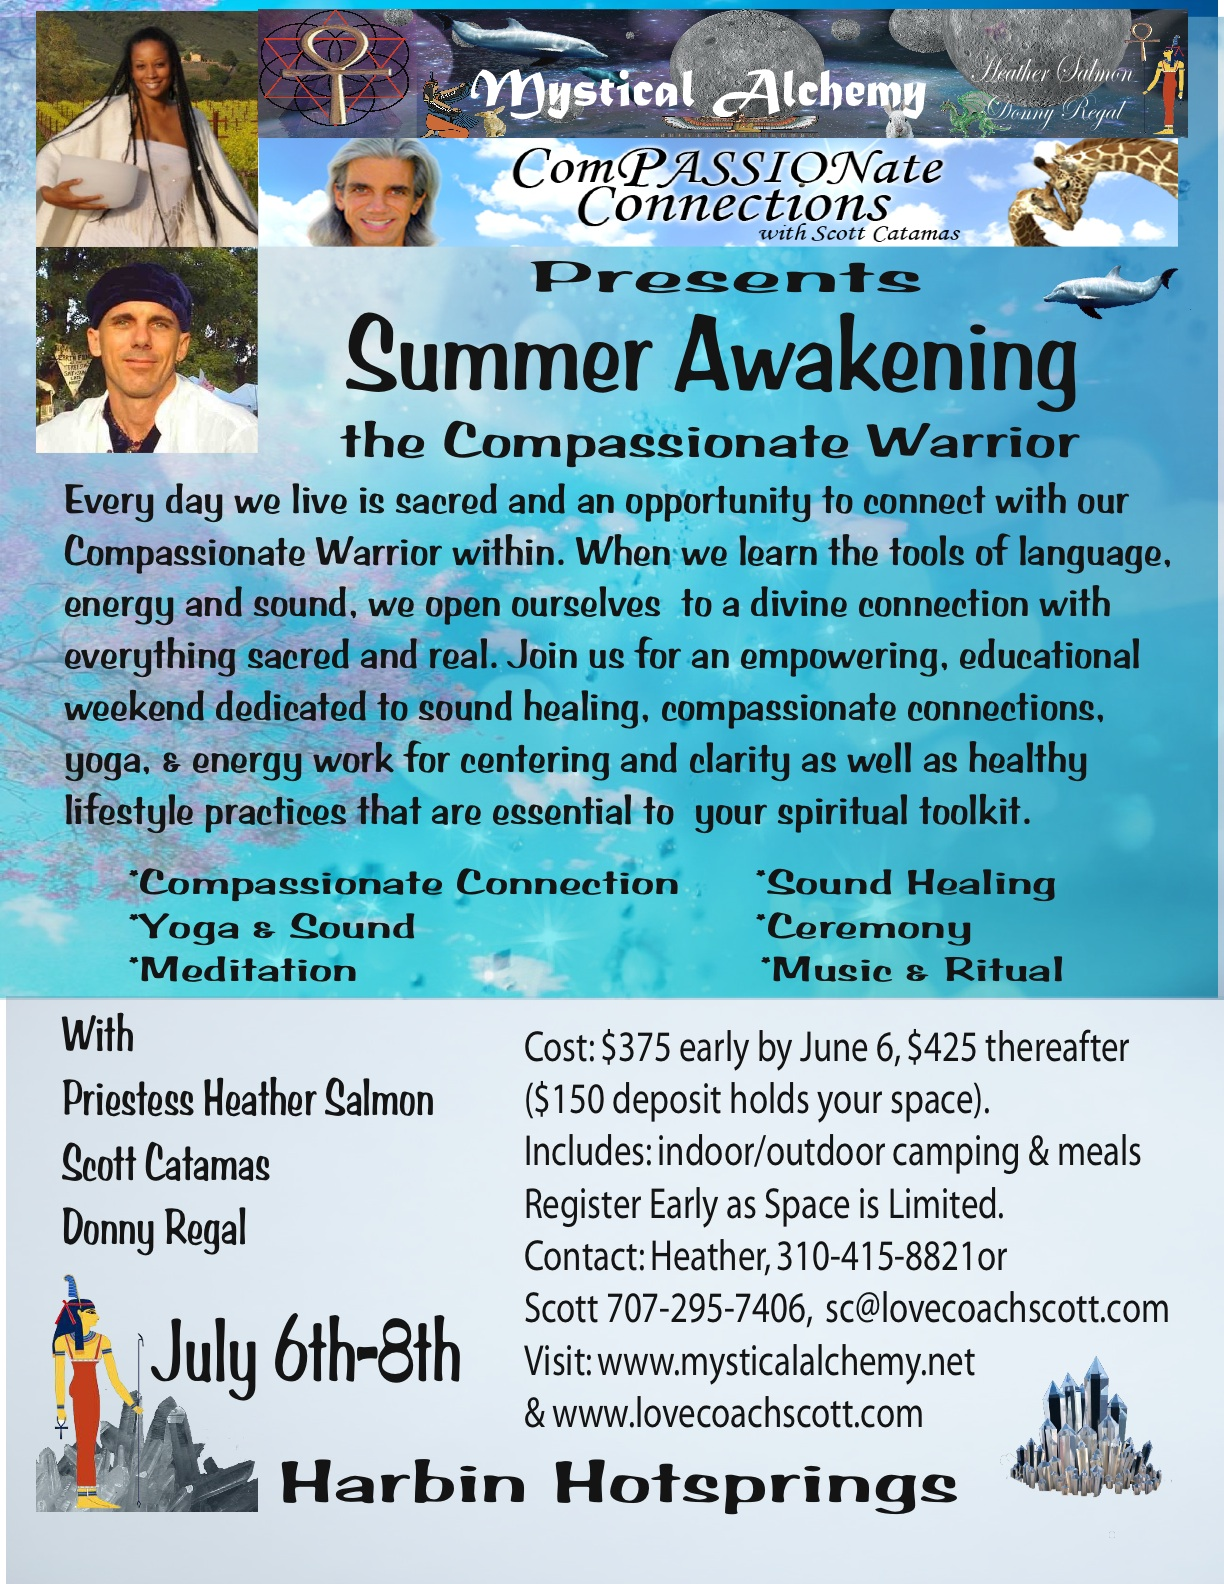 Summer Awakening, The Compassionate Warrior